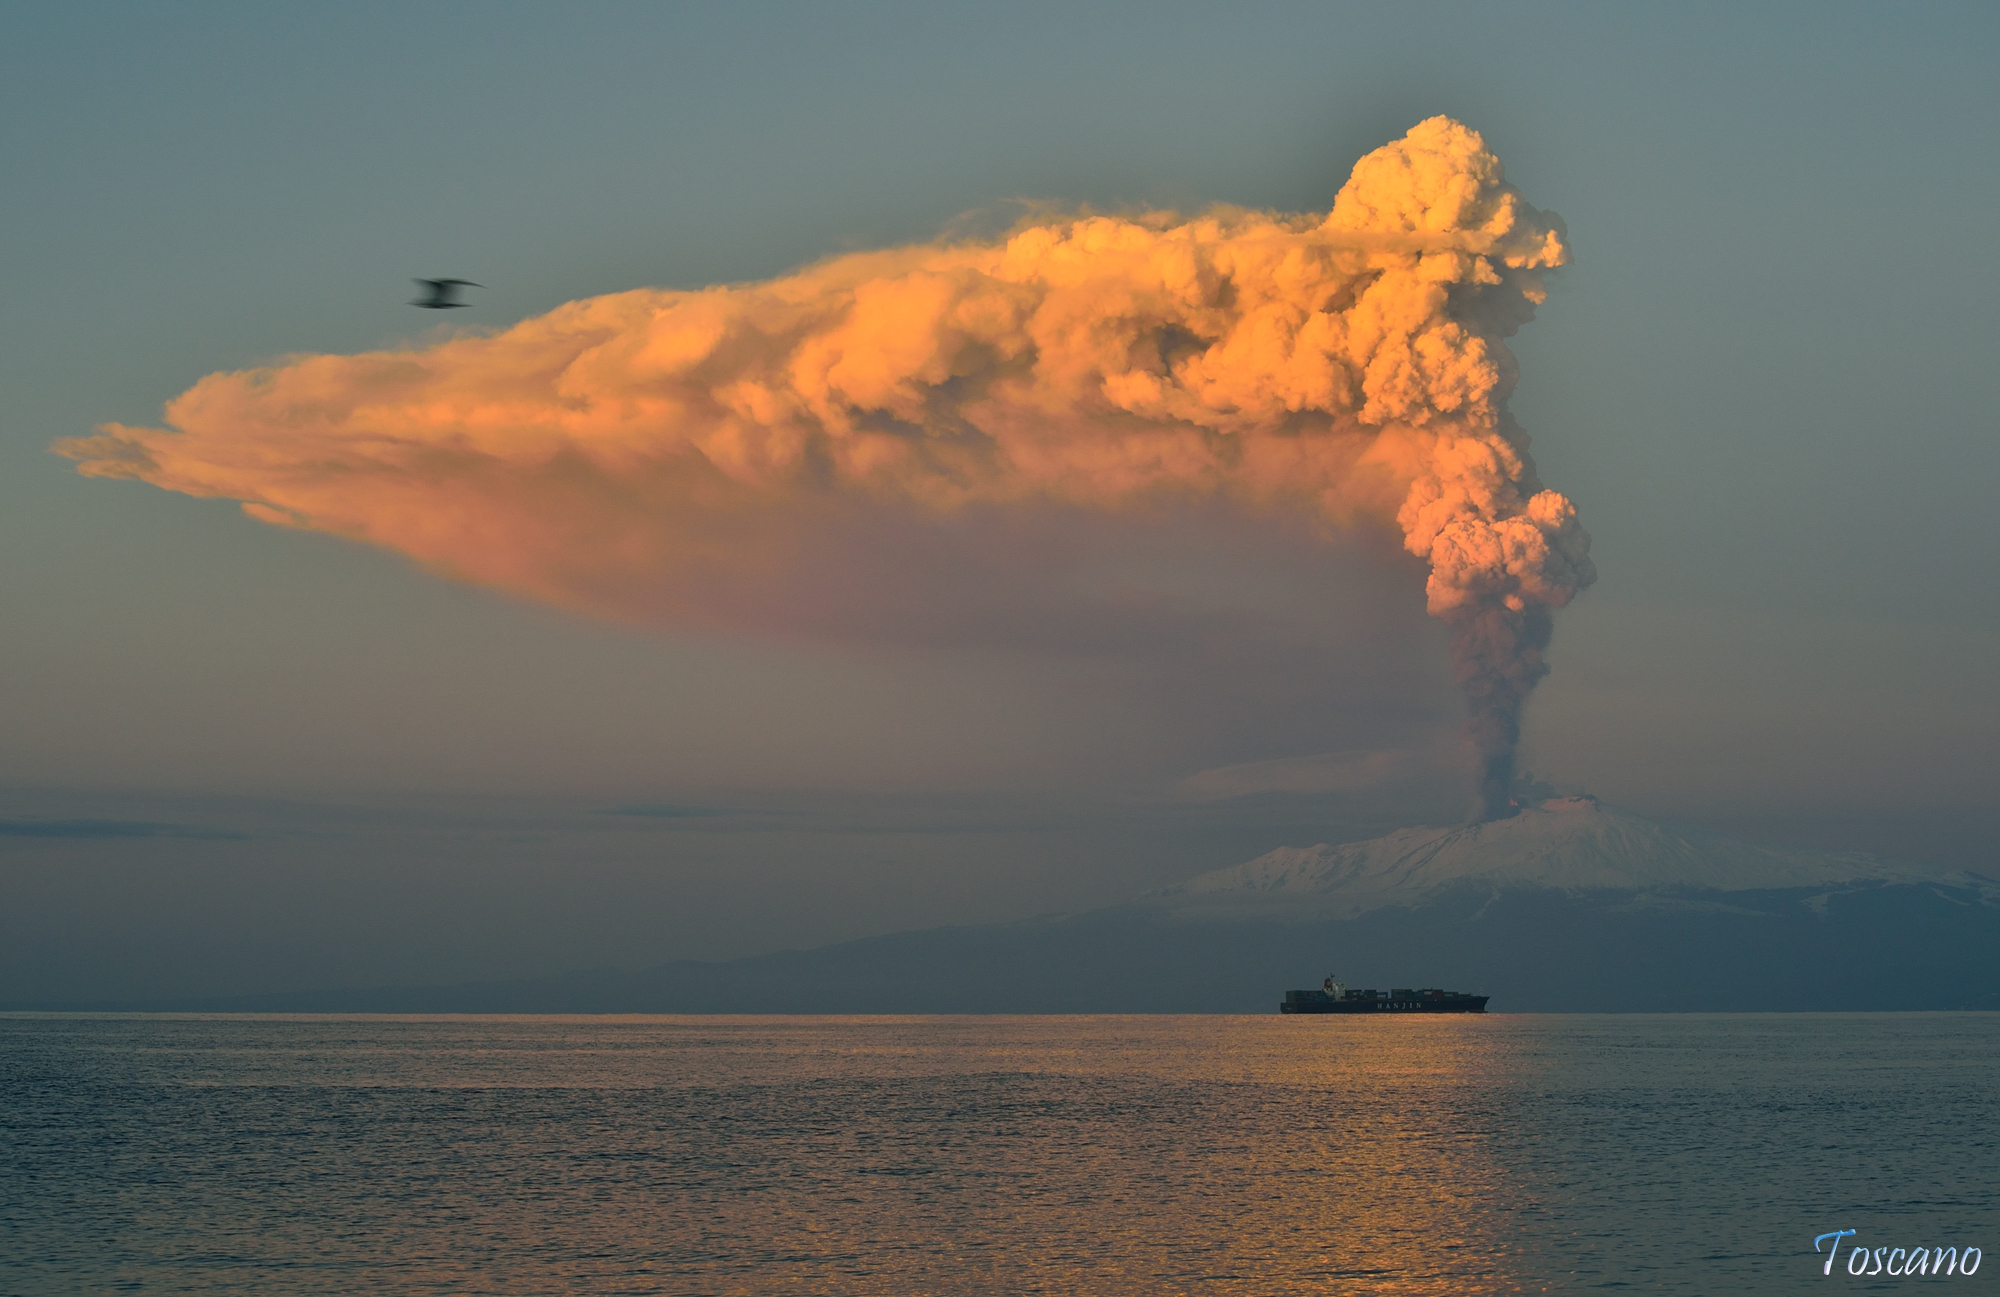 The Seagull and the eruption...